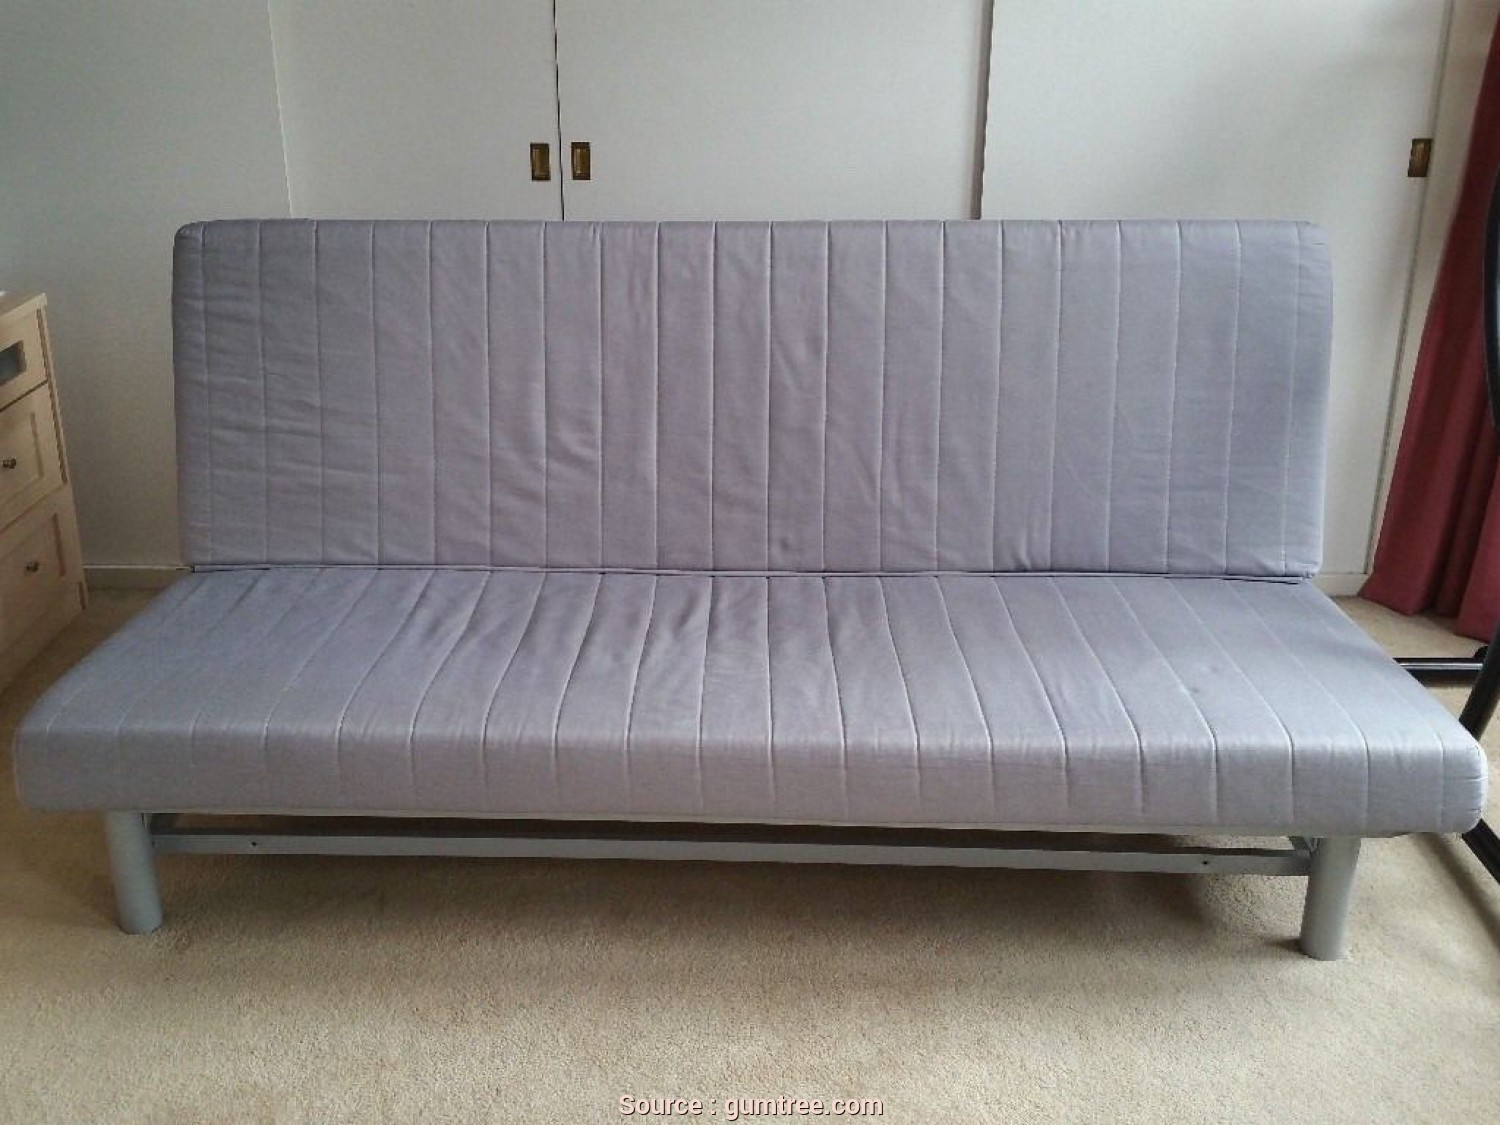 Ikea Beddinge 3 Seater Sofa Bed, Completare Ikea Beddinge LÖVÅS Sofa,, 3 Seater, In Cotham, Bristol, Gumtree